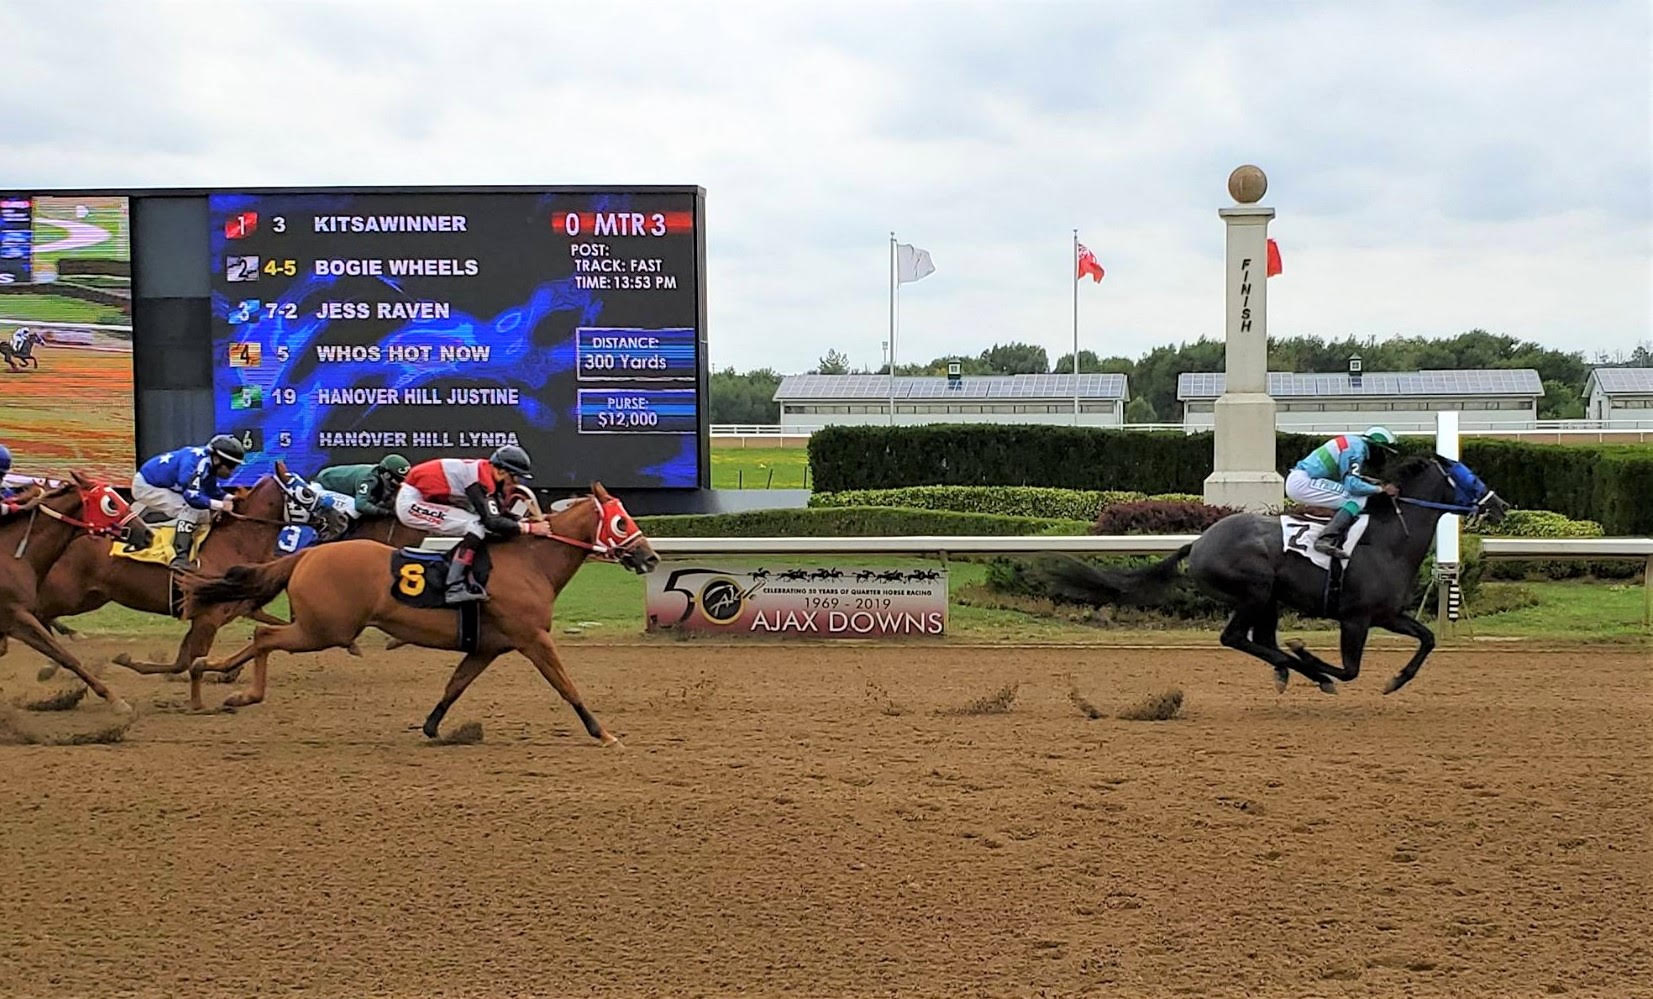 Bogie Wheels Looks to Speed Away in the $60,000 Ontario Sired Futurity Monday at Ajax Downs